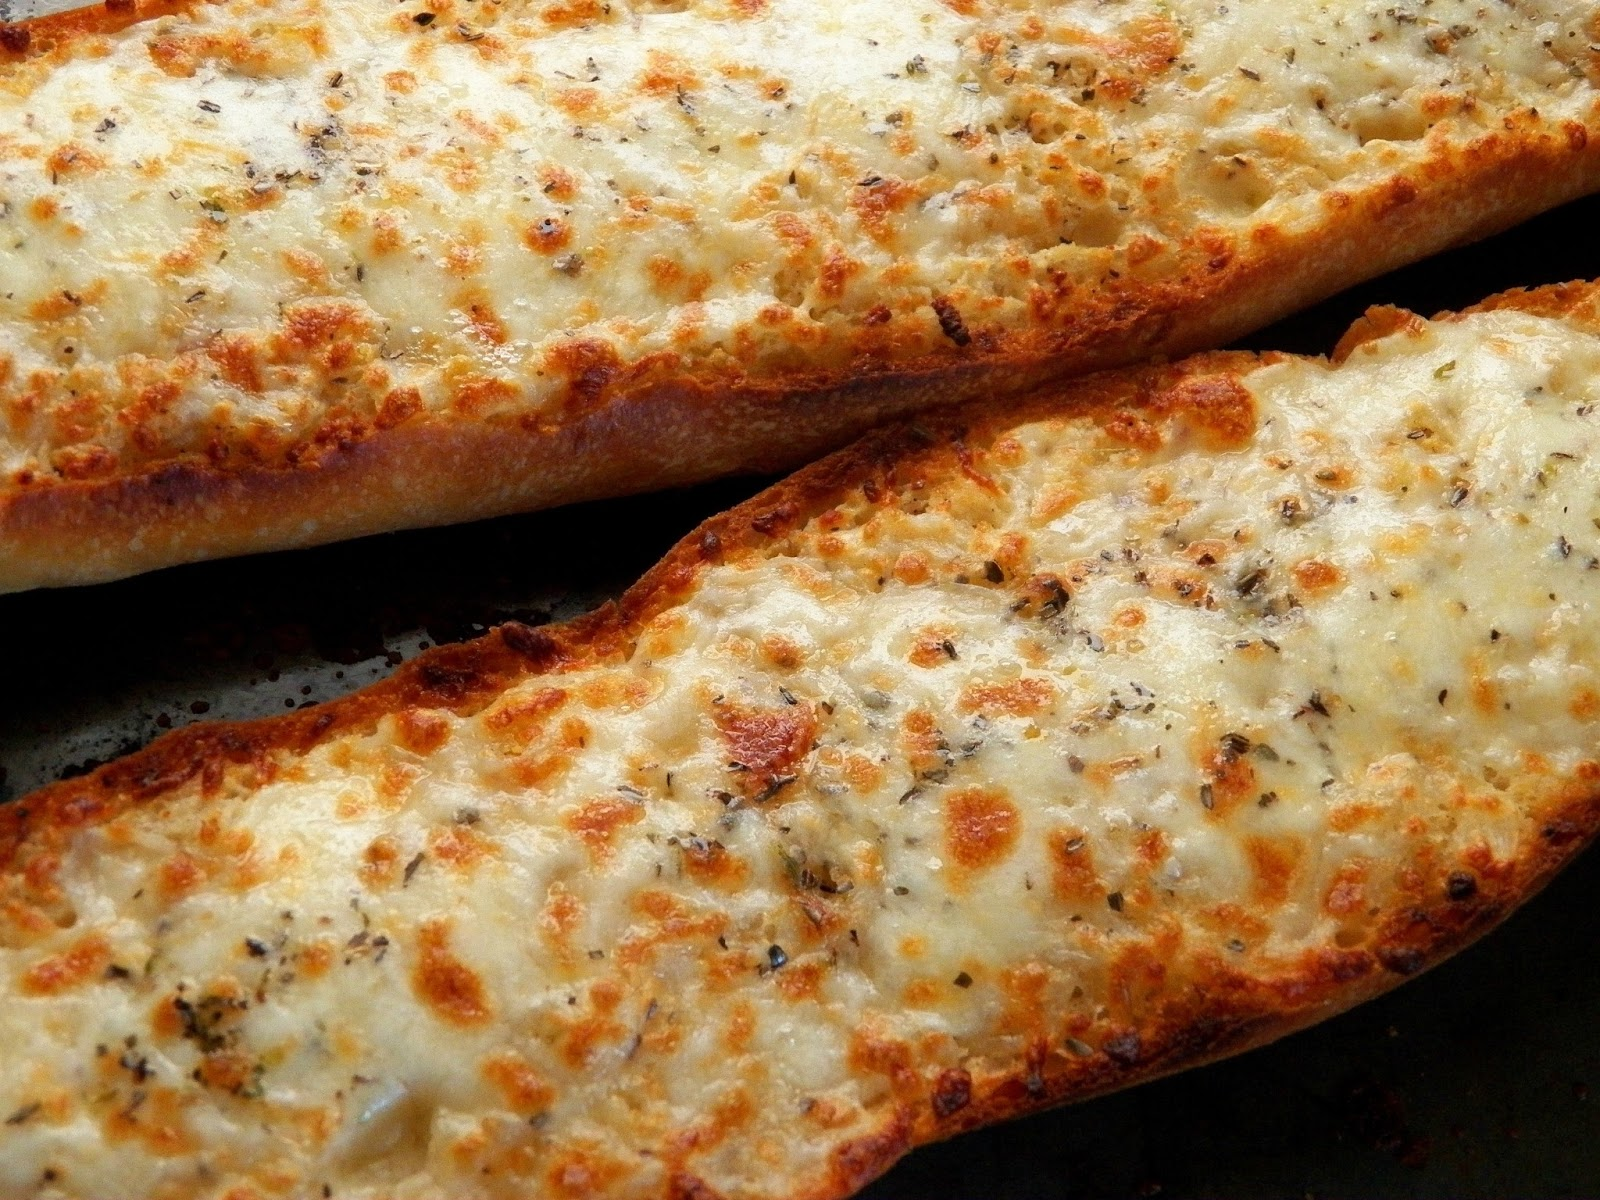 Comfy Cuisine: Cheesy Garlic Bread